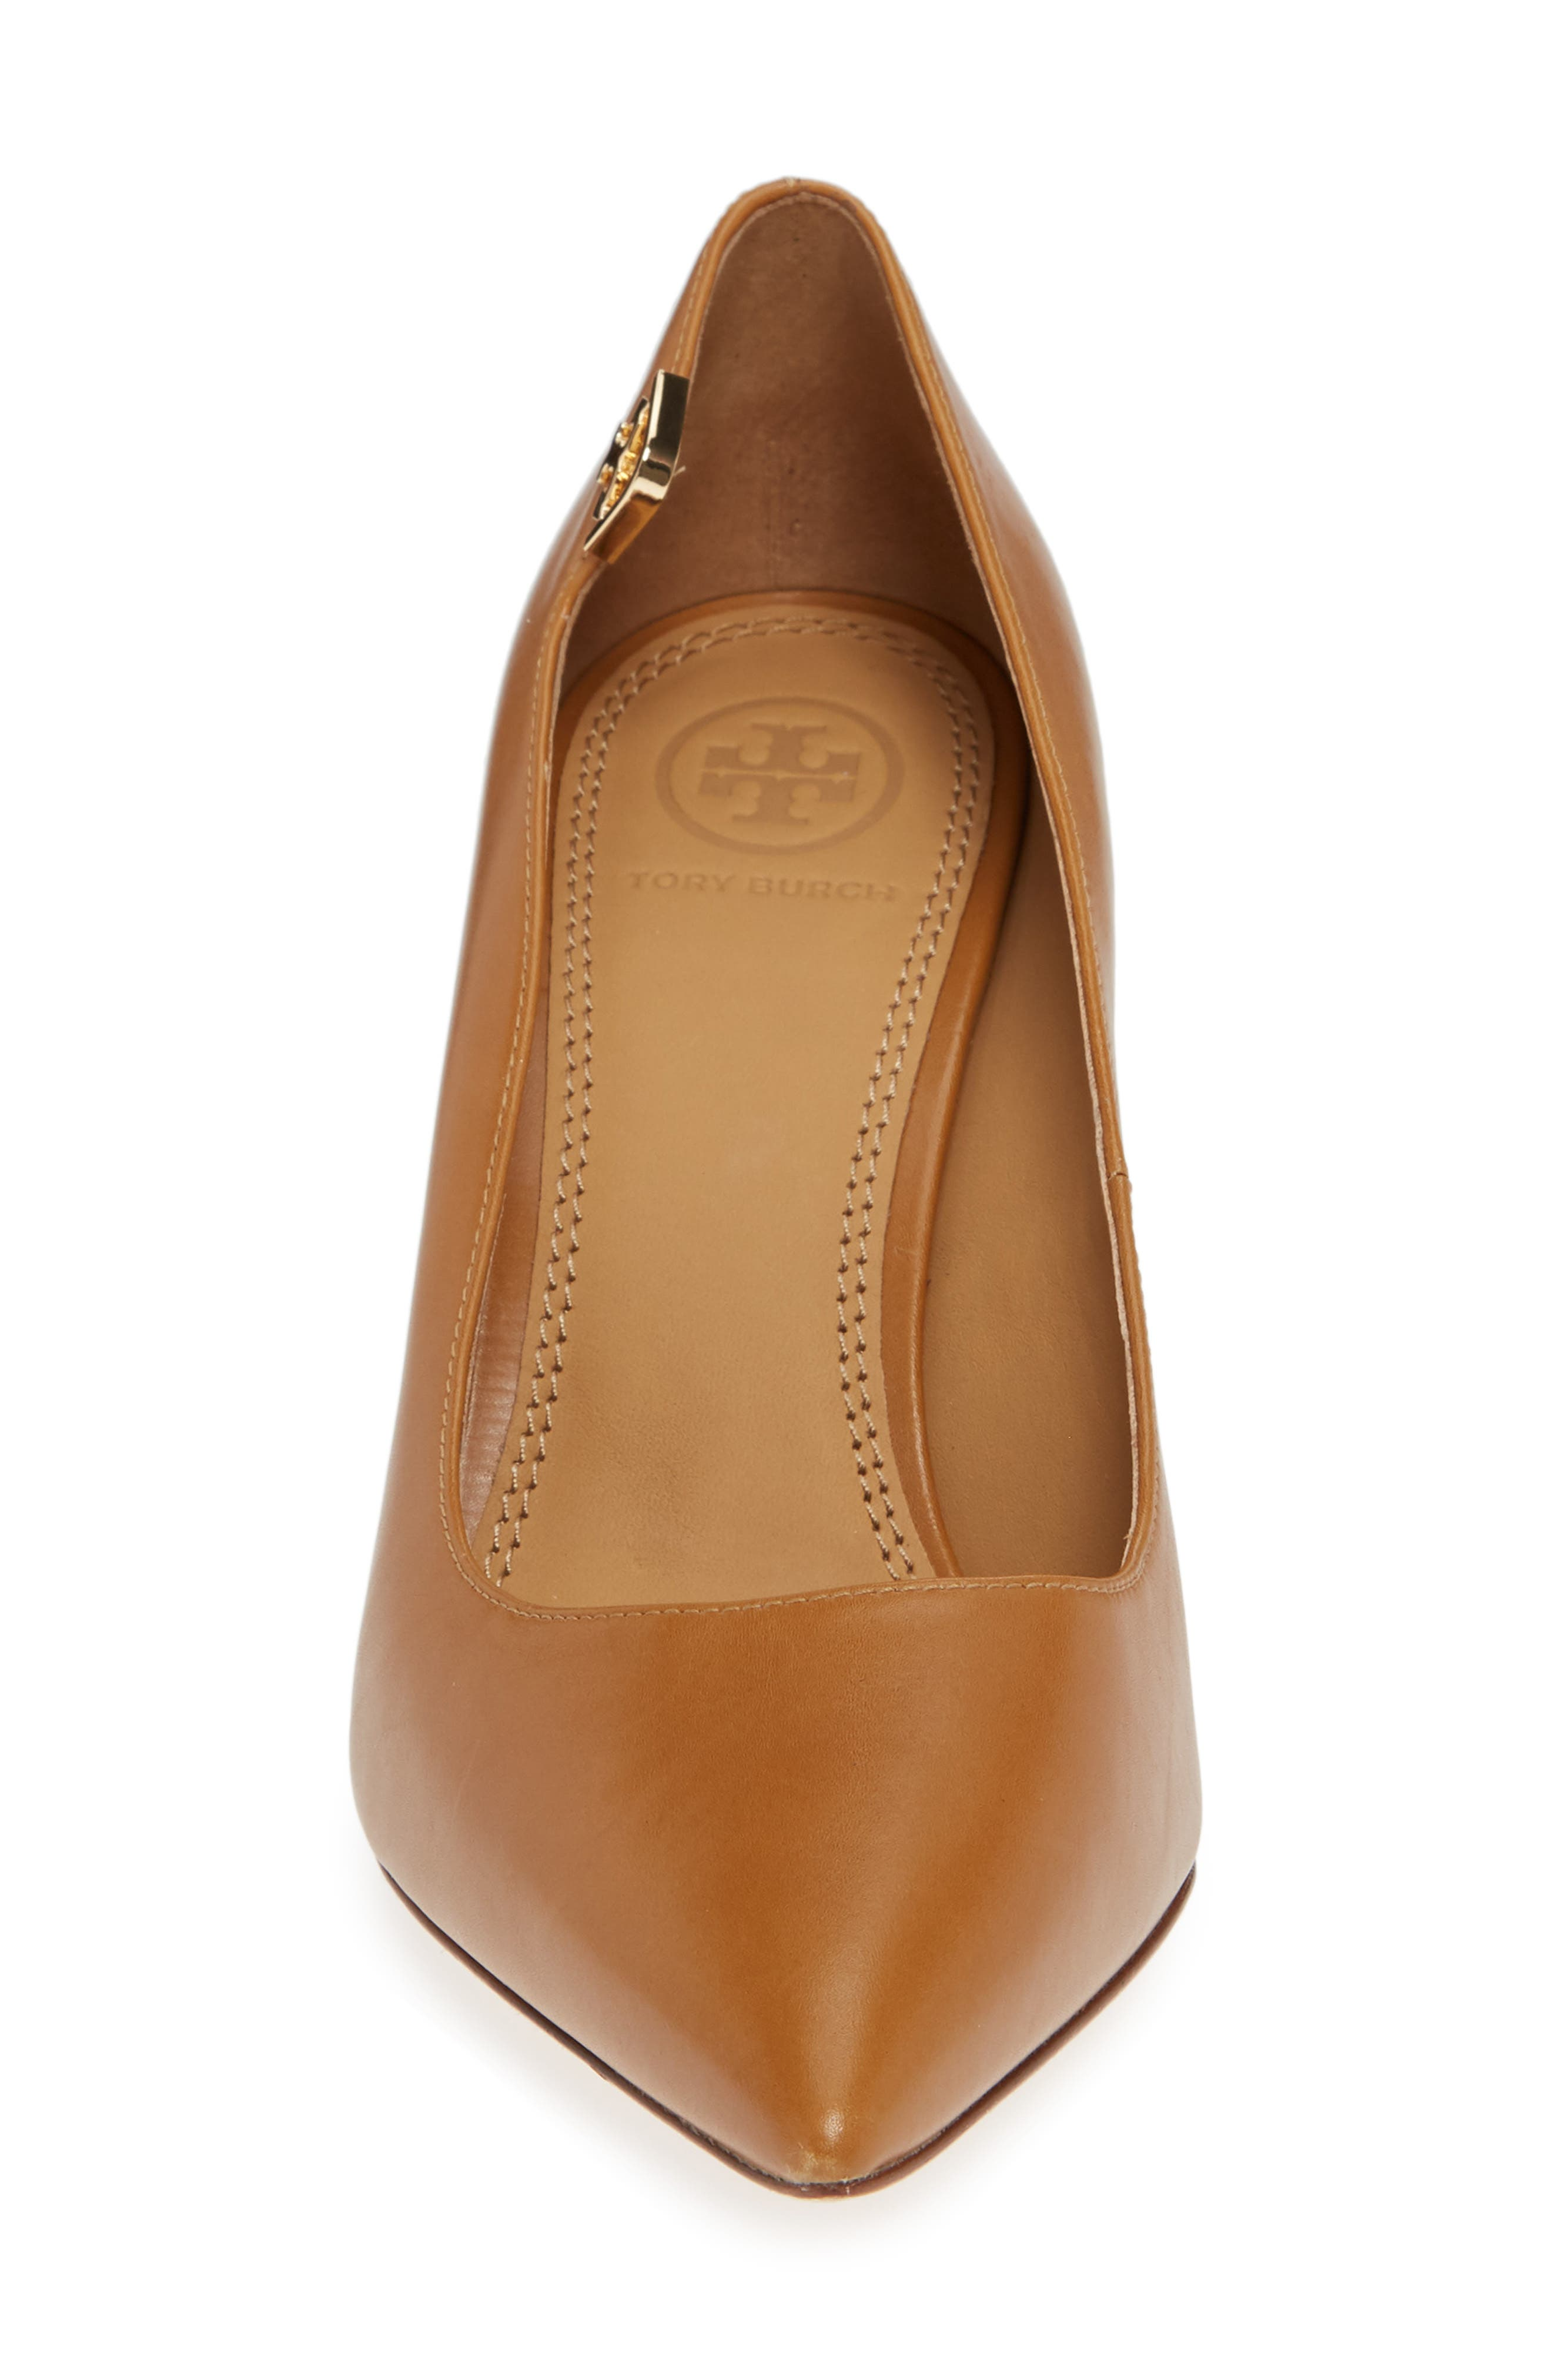 Elizabeth Pointy Toe Pump,                             Alternate thumbnail 4, color,                             DEEP VICUNA